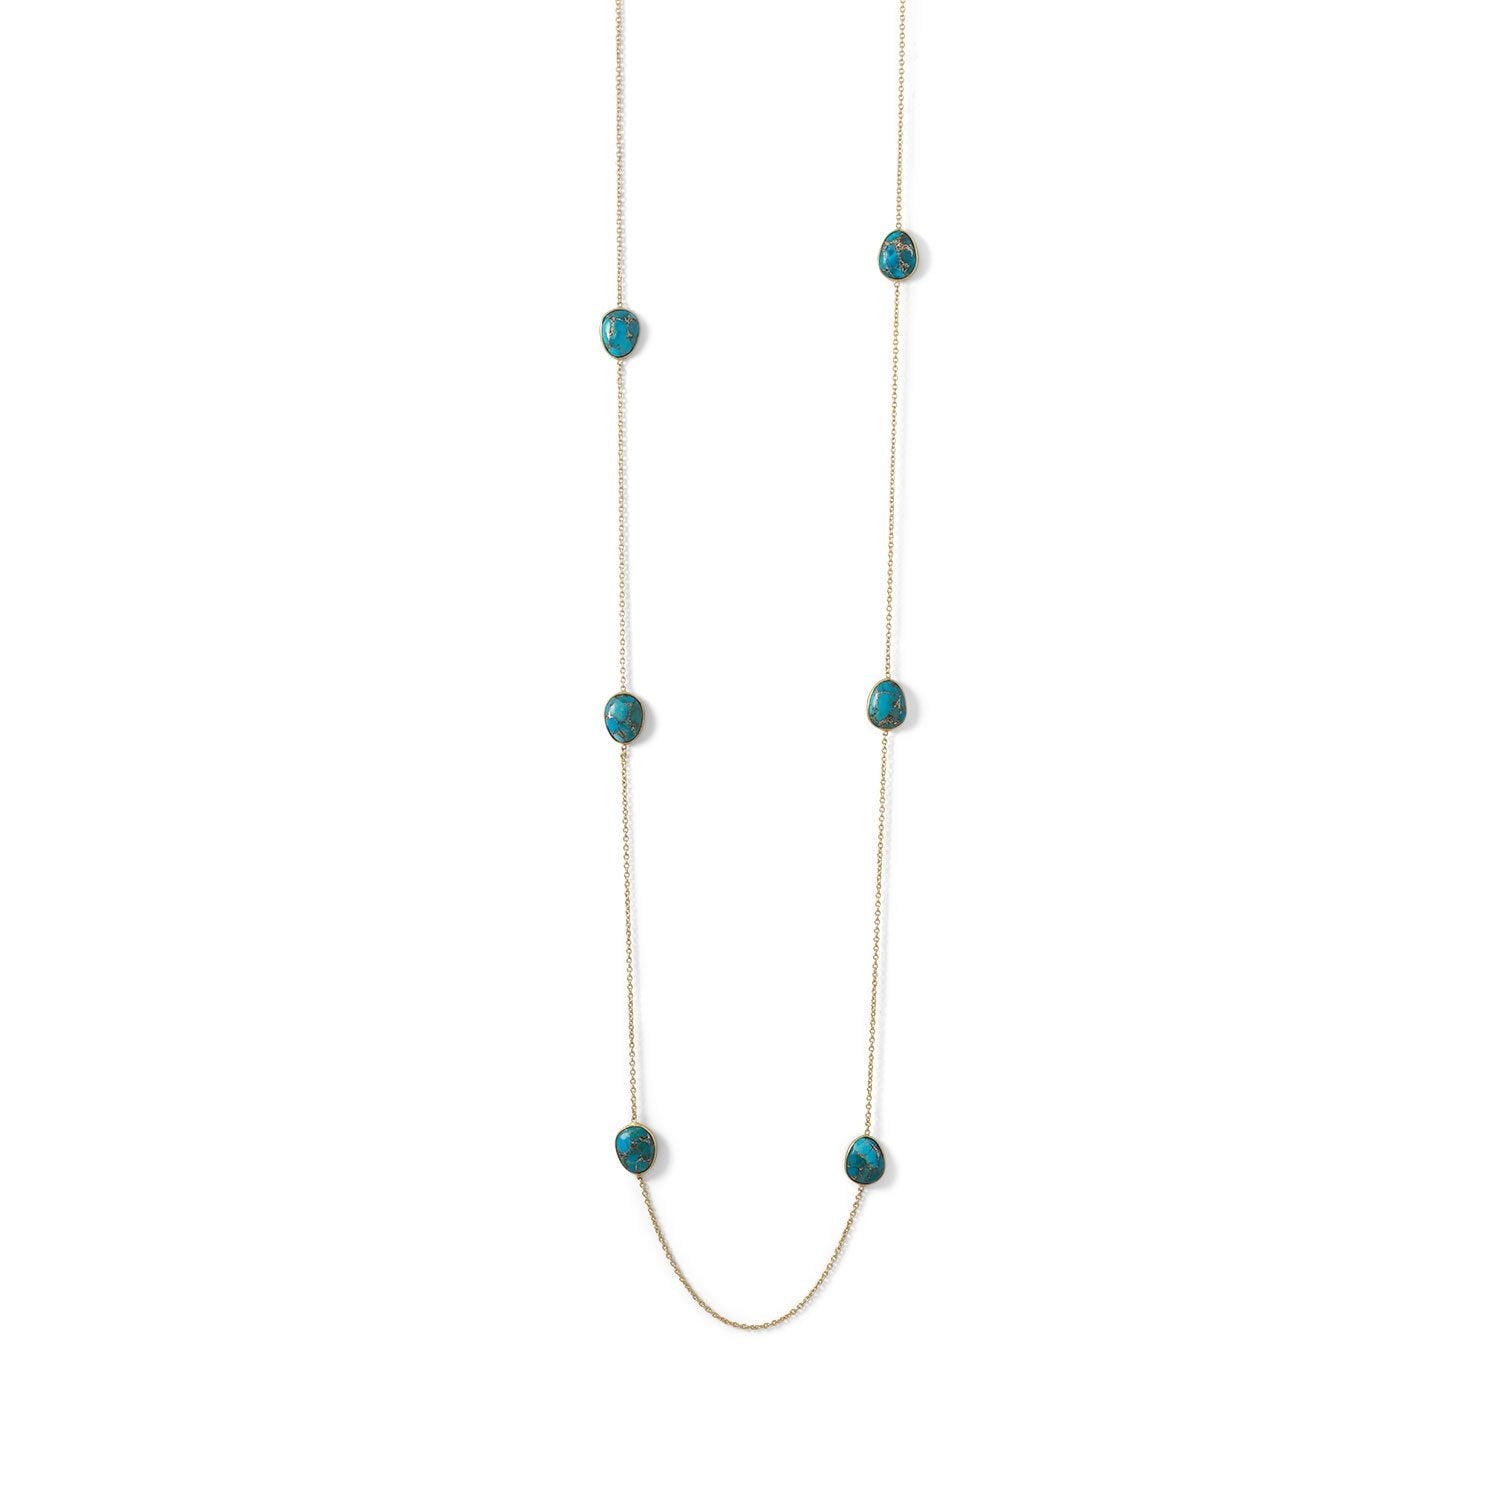 14 Karat Gold Plated Turquoise Stone Endless Necklace - Rocky Mt. Discount Outlet